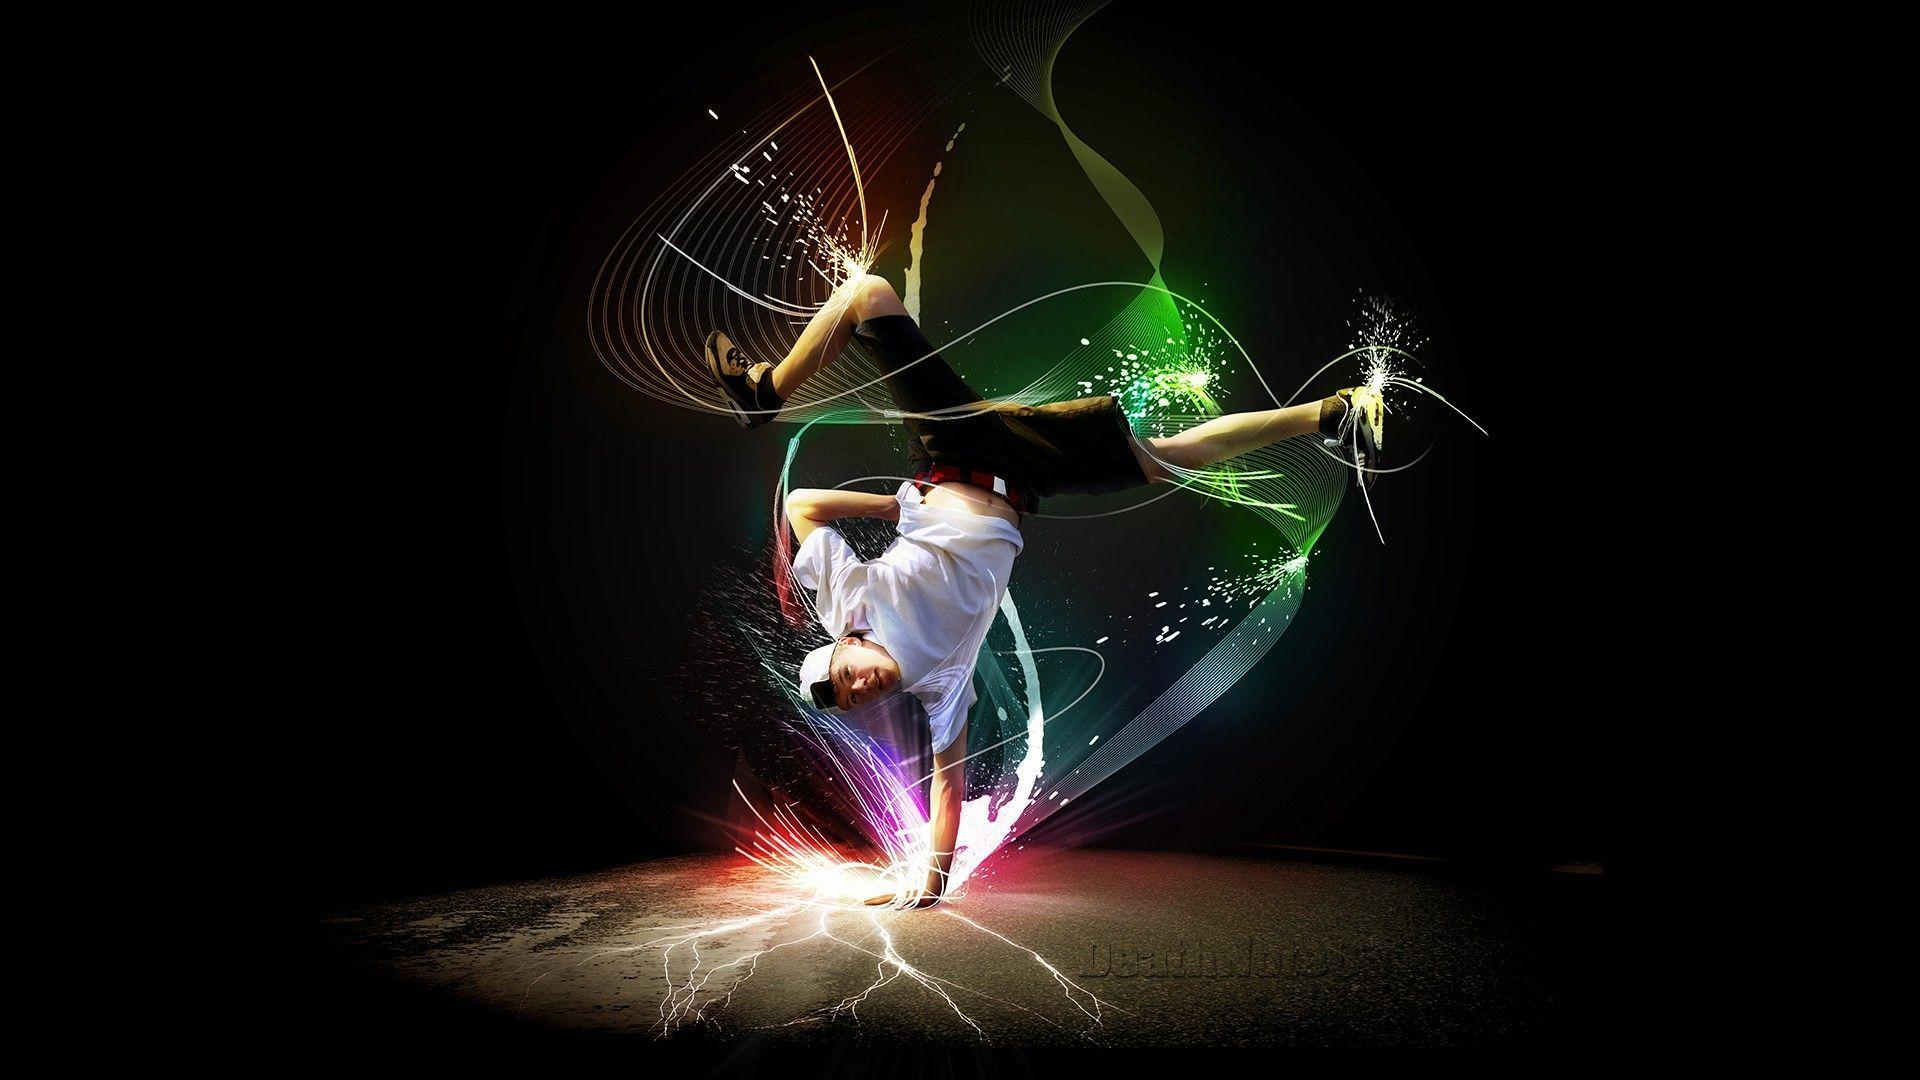 Breakdancing Wallpapers - Wallpaper Cave